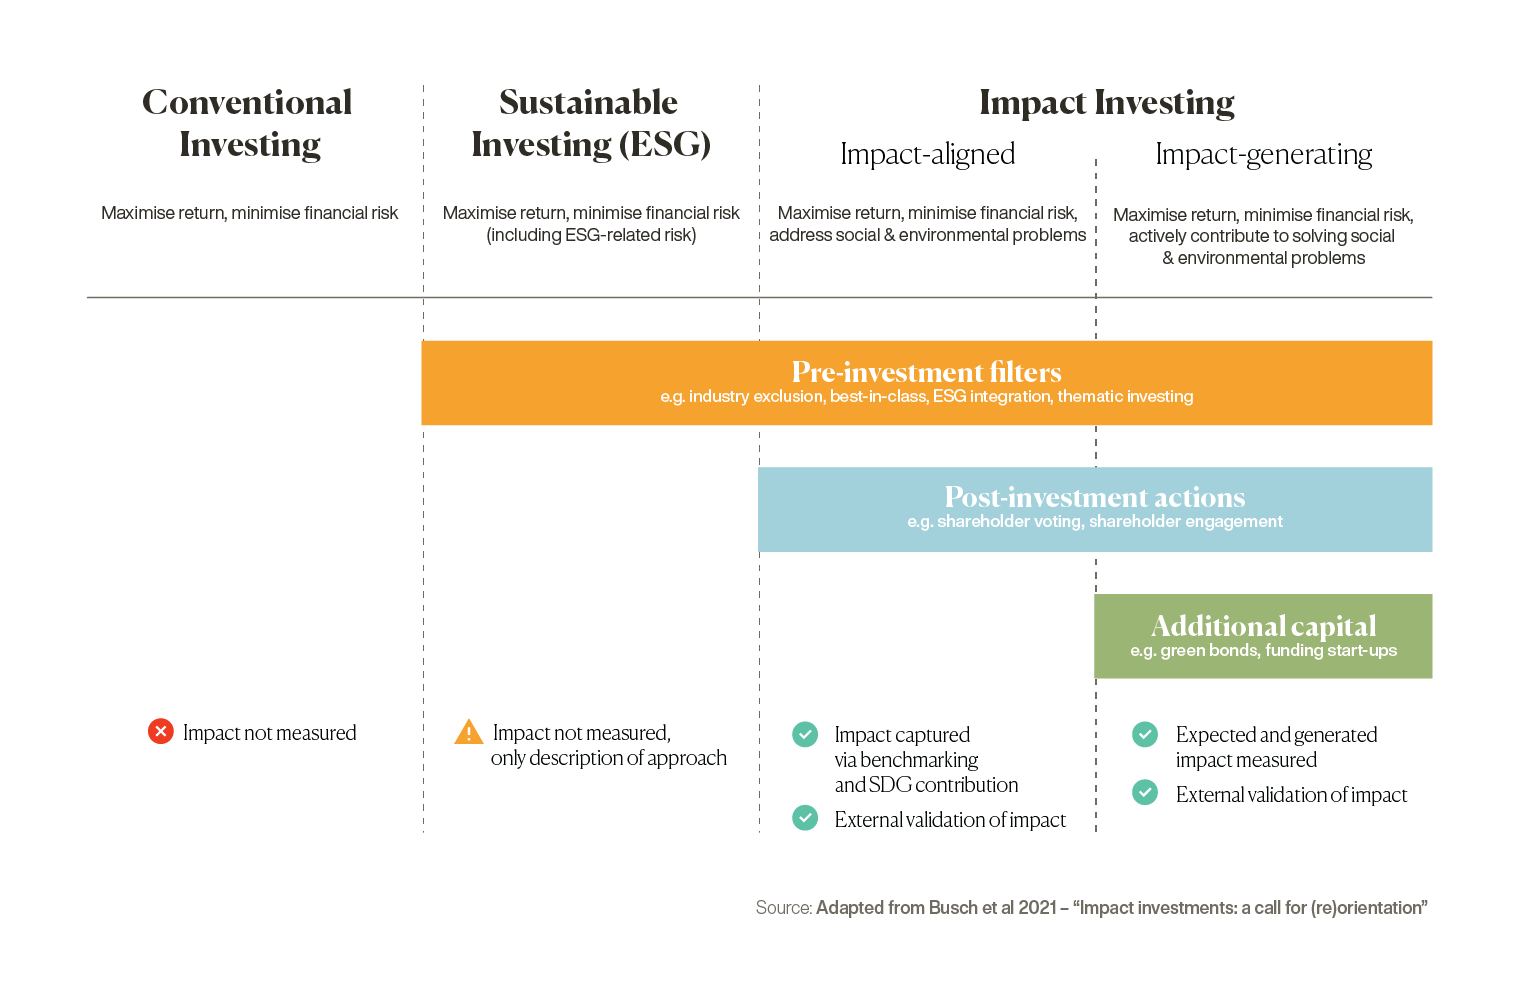 Graphic showing the differences between conventional investing, ESG-related investing and impact investing